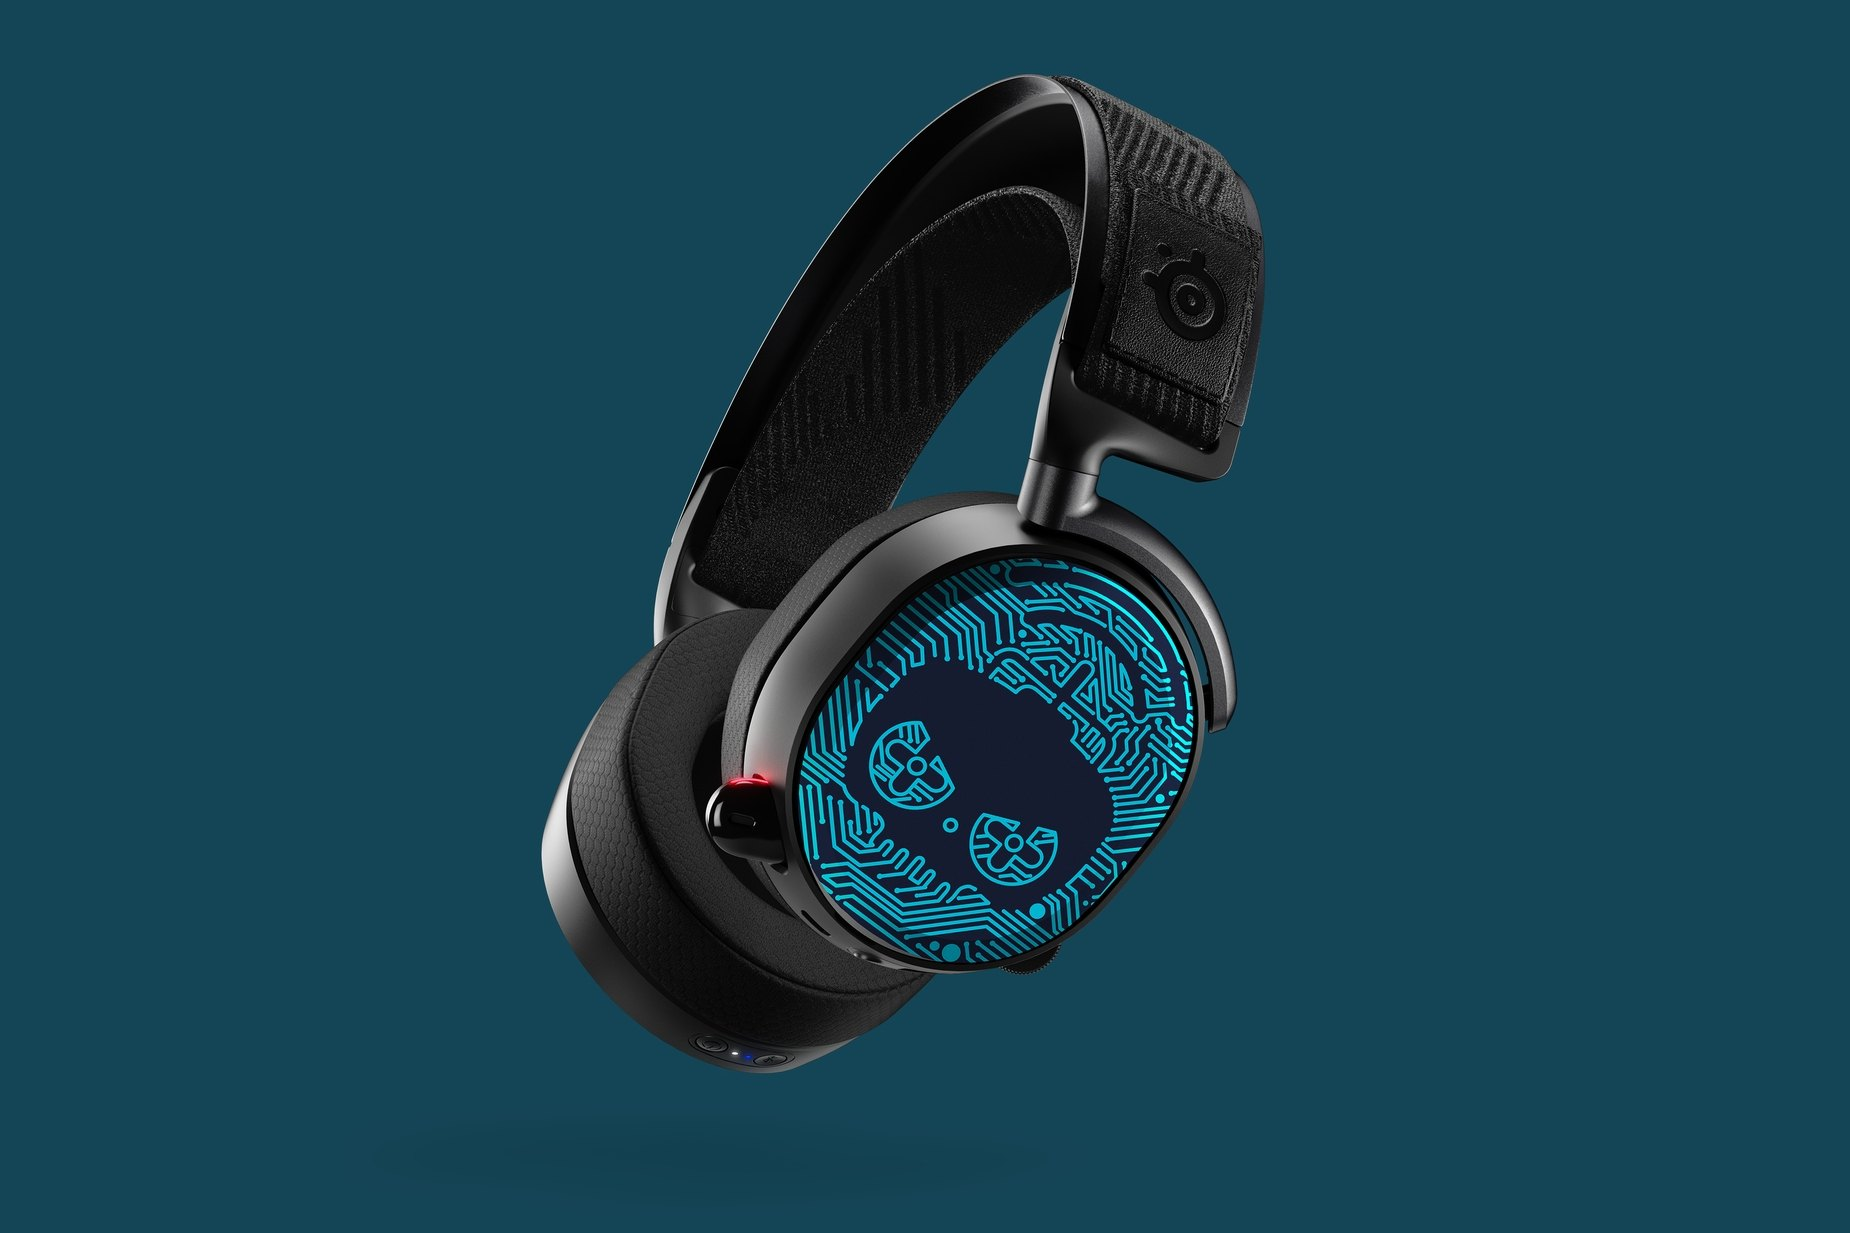 Image of the Rainbox Six speaker plates adorning the side of the Arctis headset